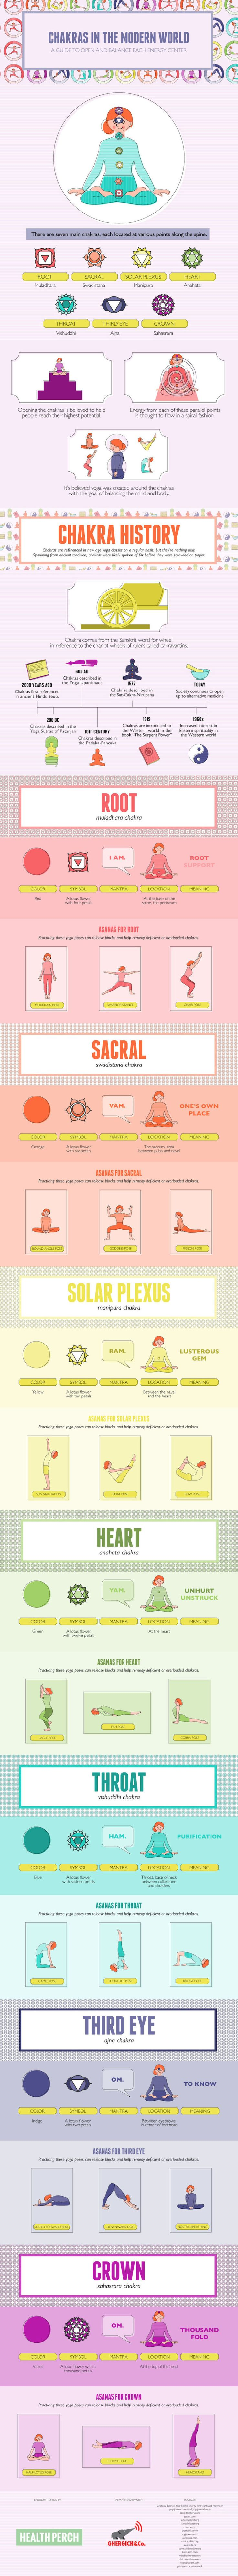 Balance Your 7 Chakras With These Yoga Poses & Mantras (Infographic) - mindbodygreen.com